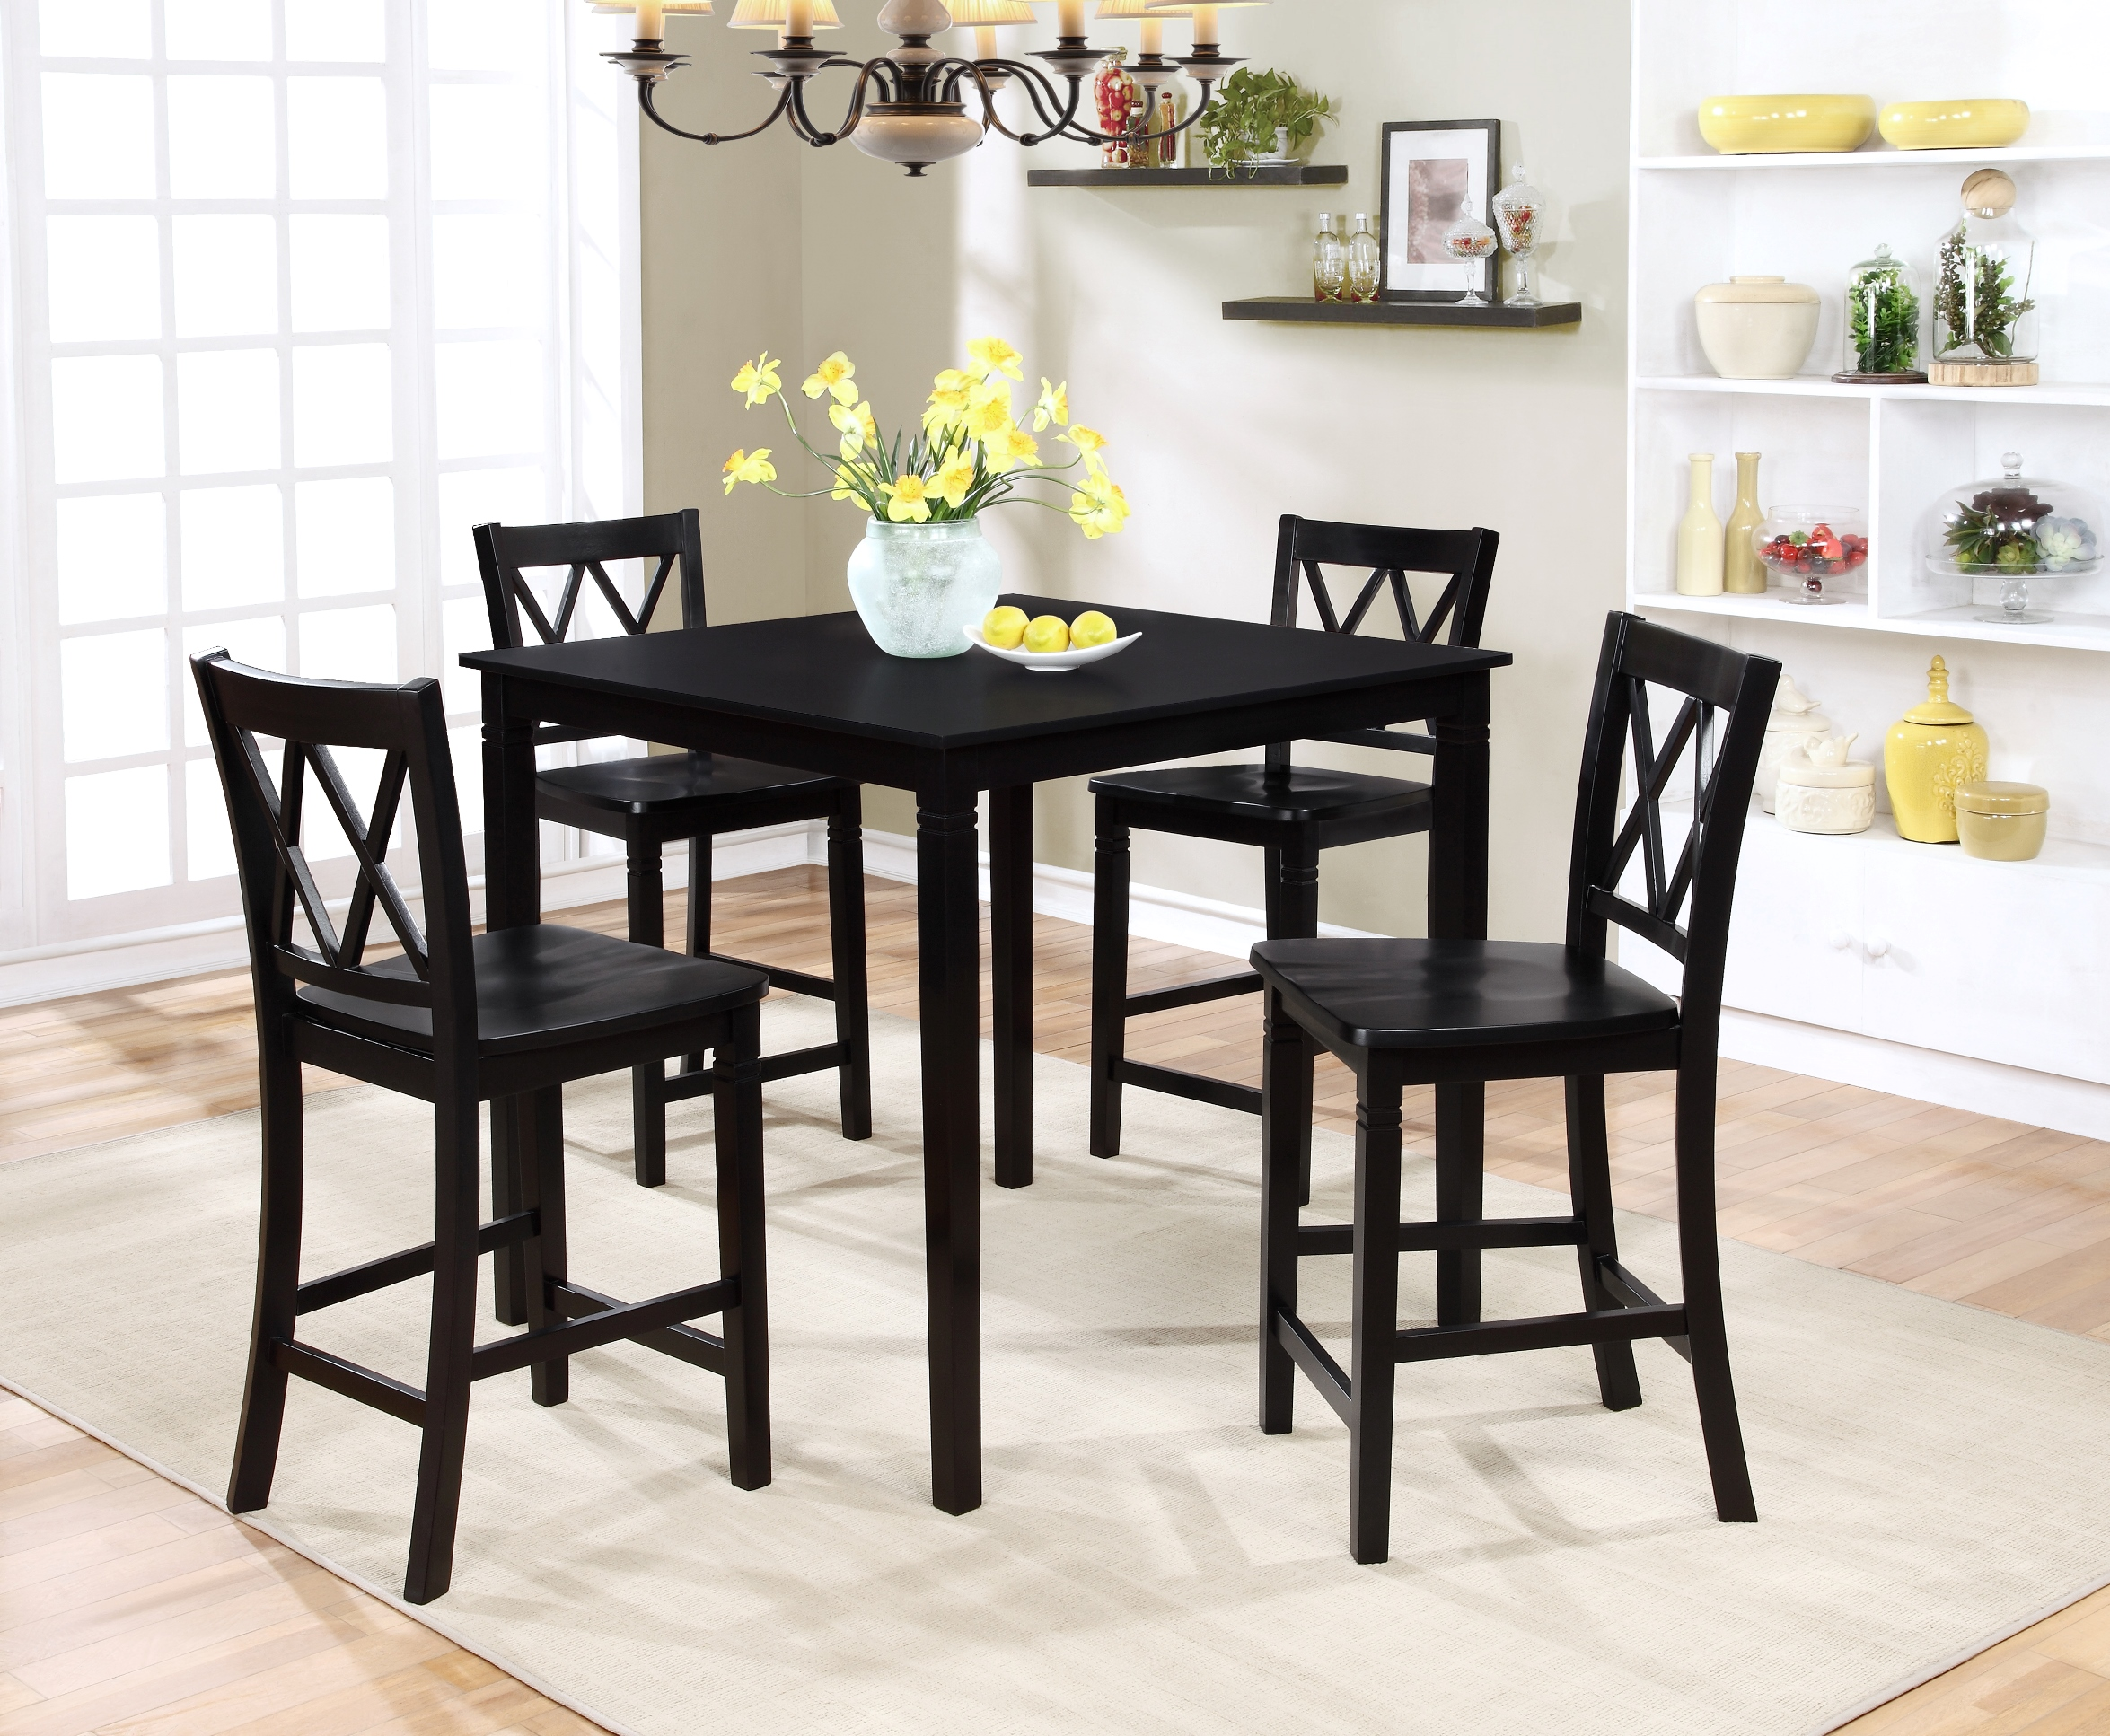 Kmart Deals On Furniture Toys Clothes Tools Tablets Small Dining Room Set Square Dining Room Table Dining Room Table Set